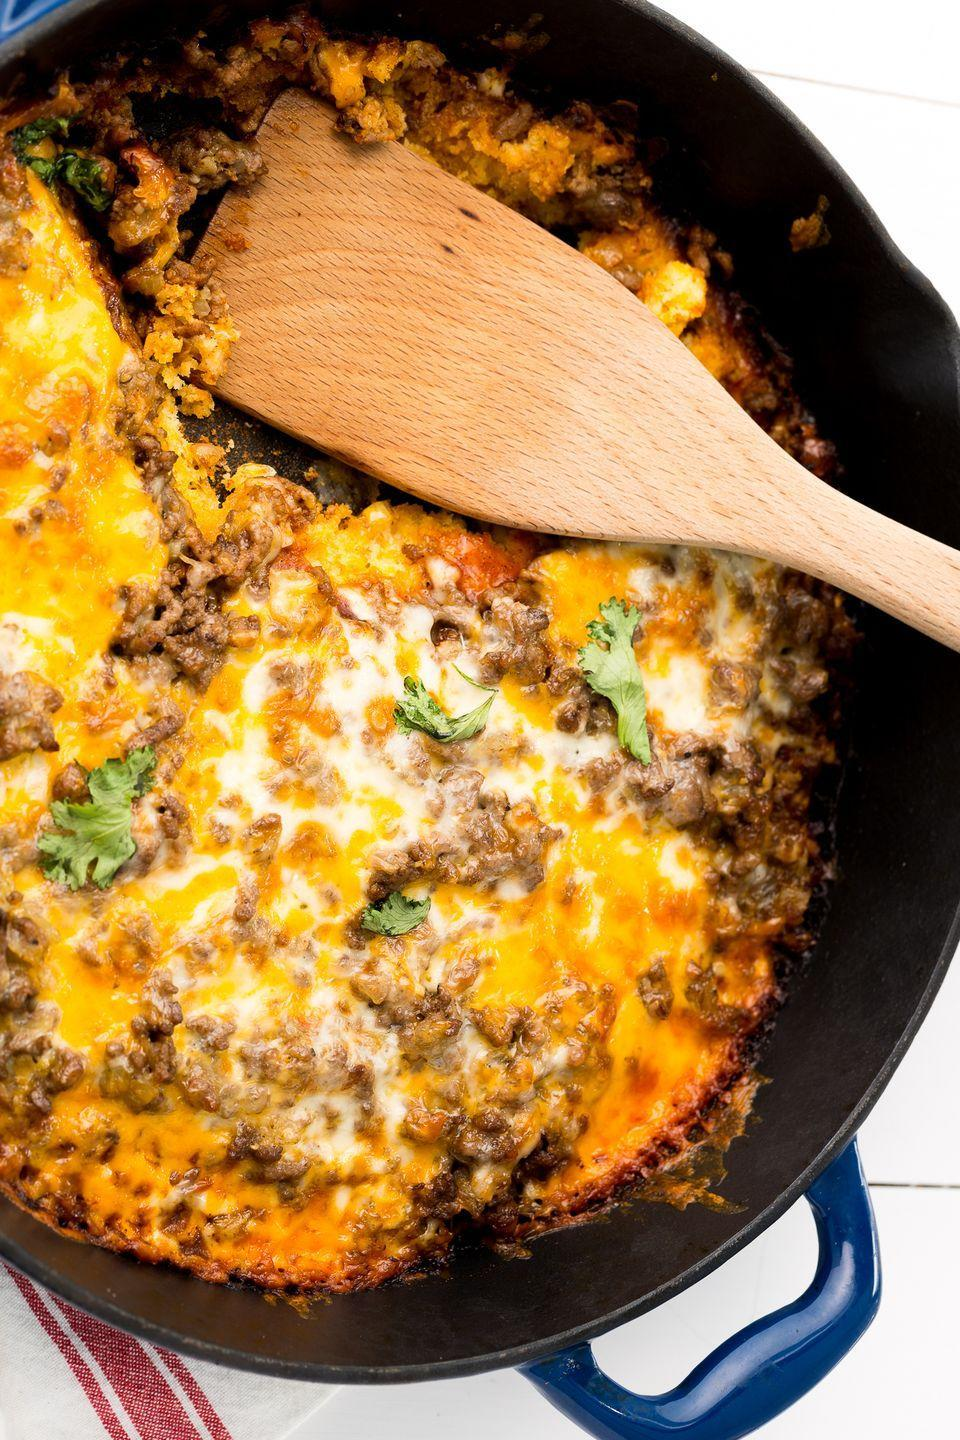 "<p>It's all about that skillet cornbread crust.</p><p>Get the recipe from <a href=""https://www.delish.com/cooking/recipe-ideas/recipes/a46964/tamale-pie/"" rel=""nofollow noopener"" target=""_blank"" data-ylk=""slk:Delish"" class=""link rapid-noclick-resp"">Delish</a>.</p>"